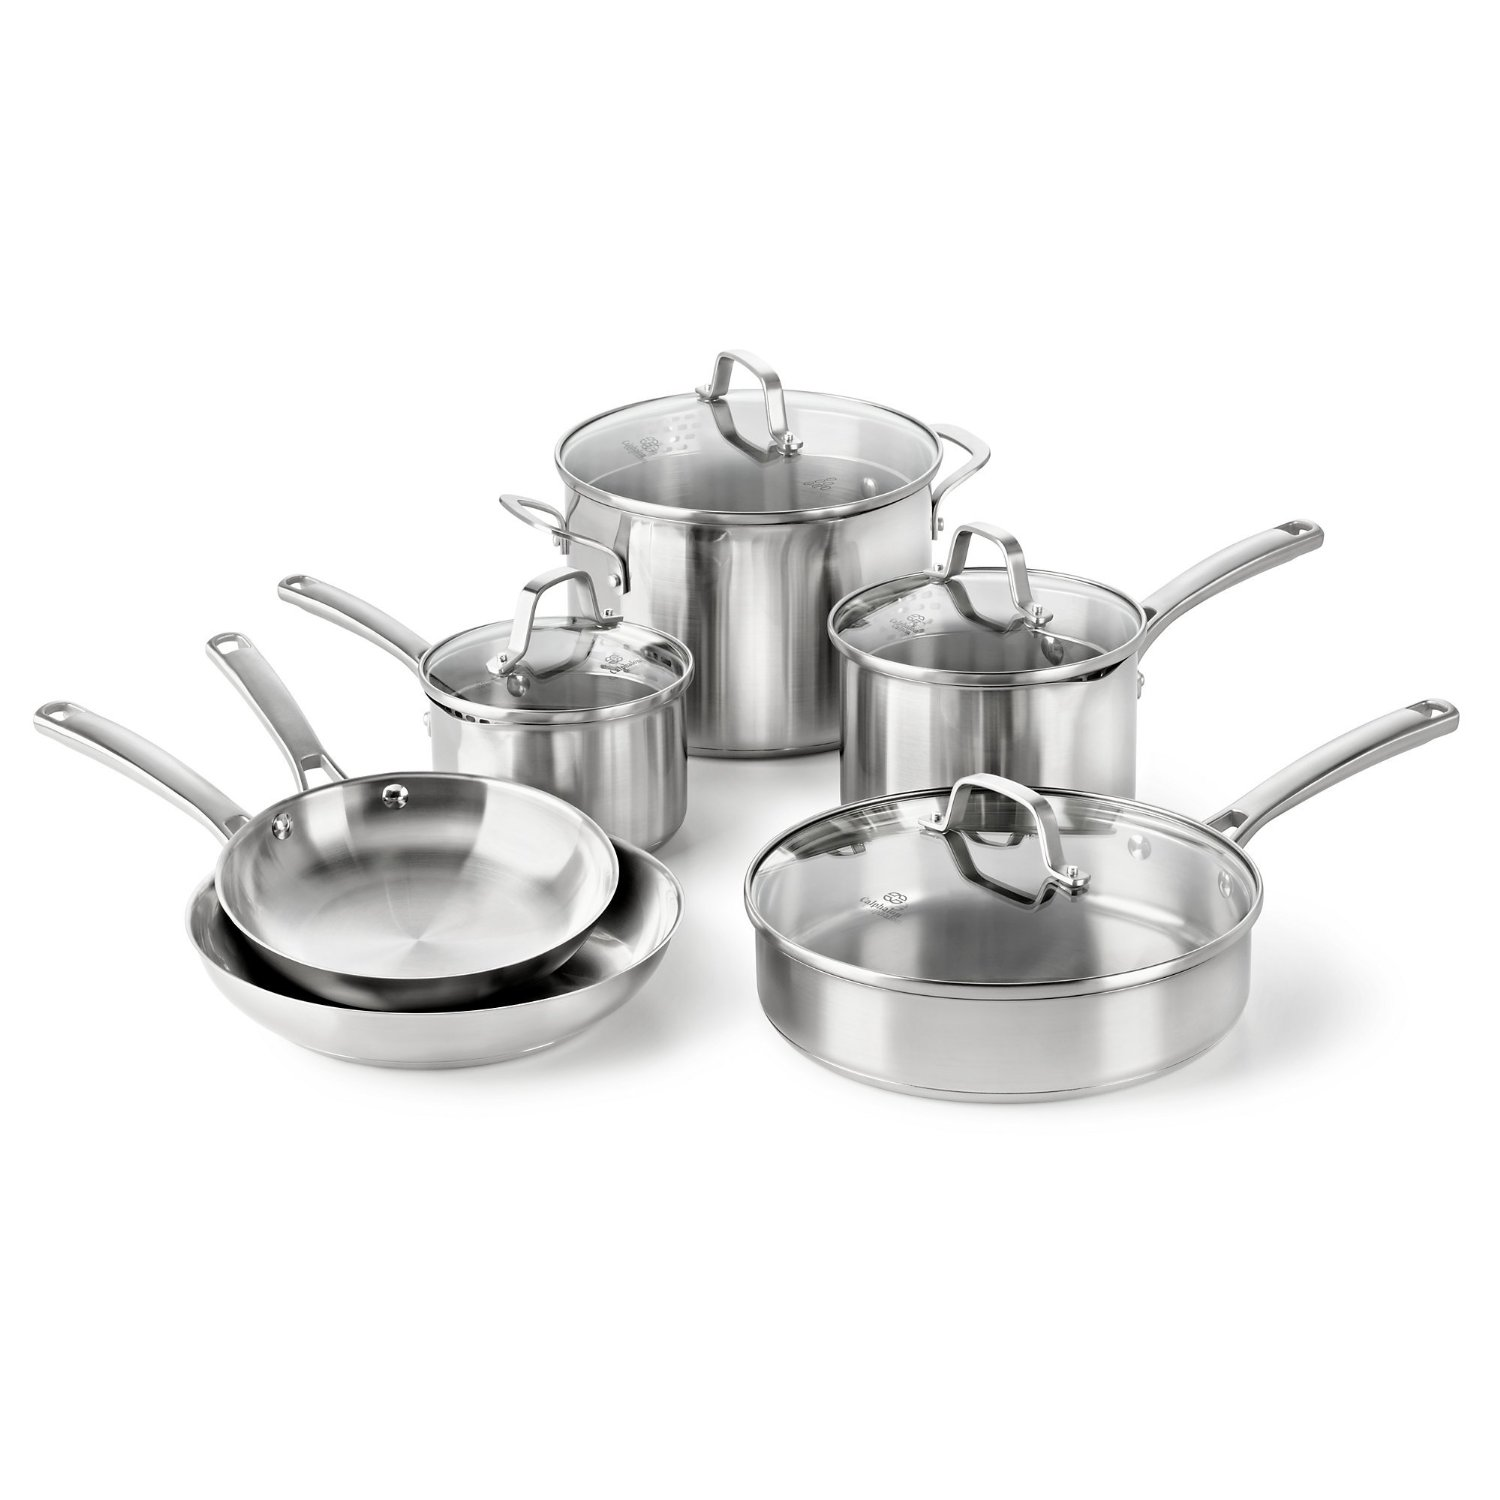 Calphalon Stainless Steel Cookware Set | Minimalist Baker